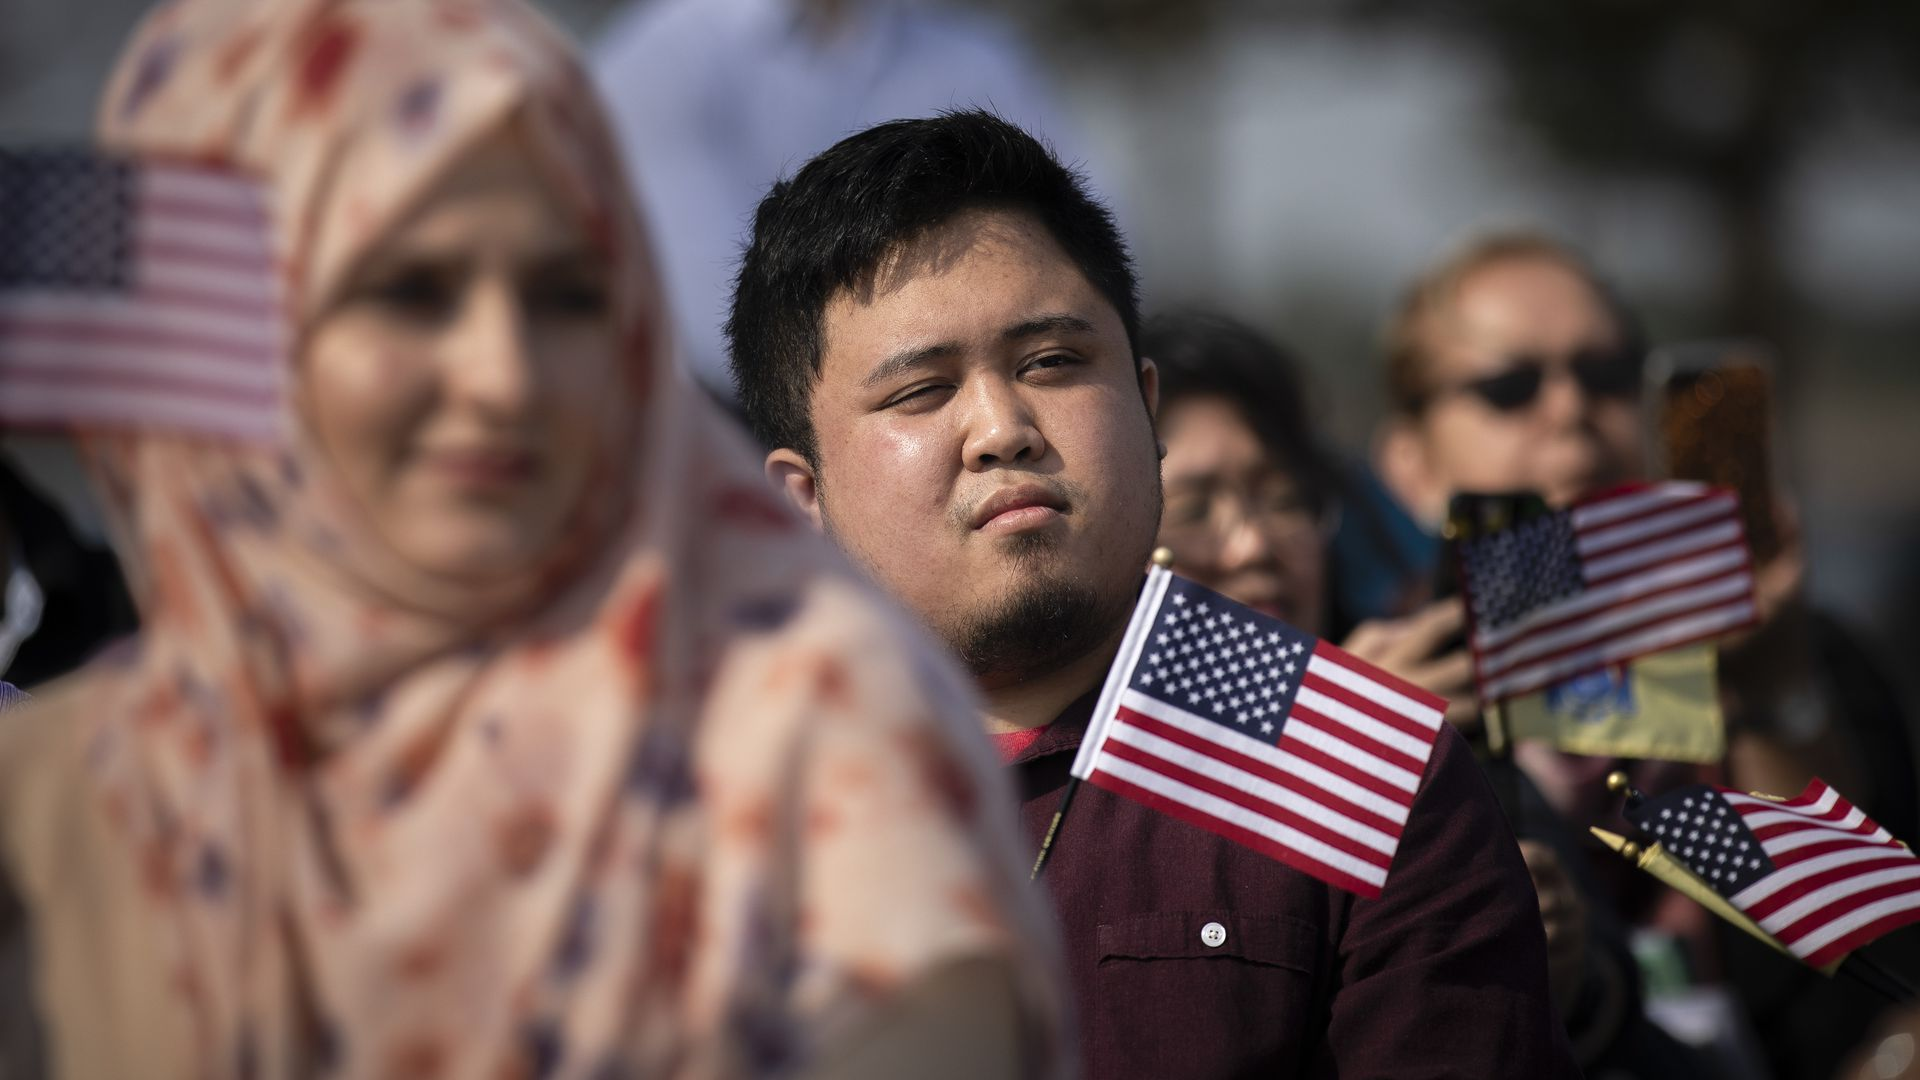 New American citizens during a naturalization ceremony.